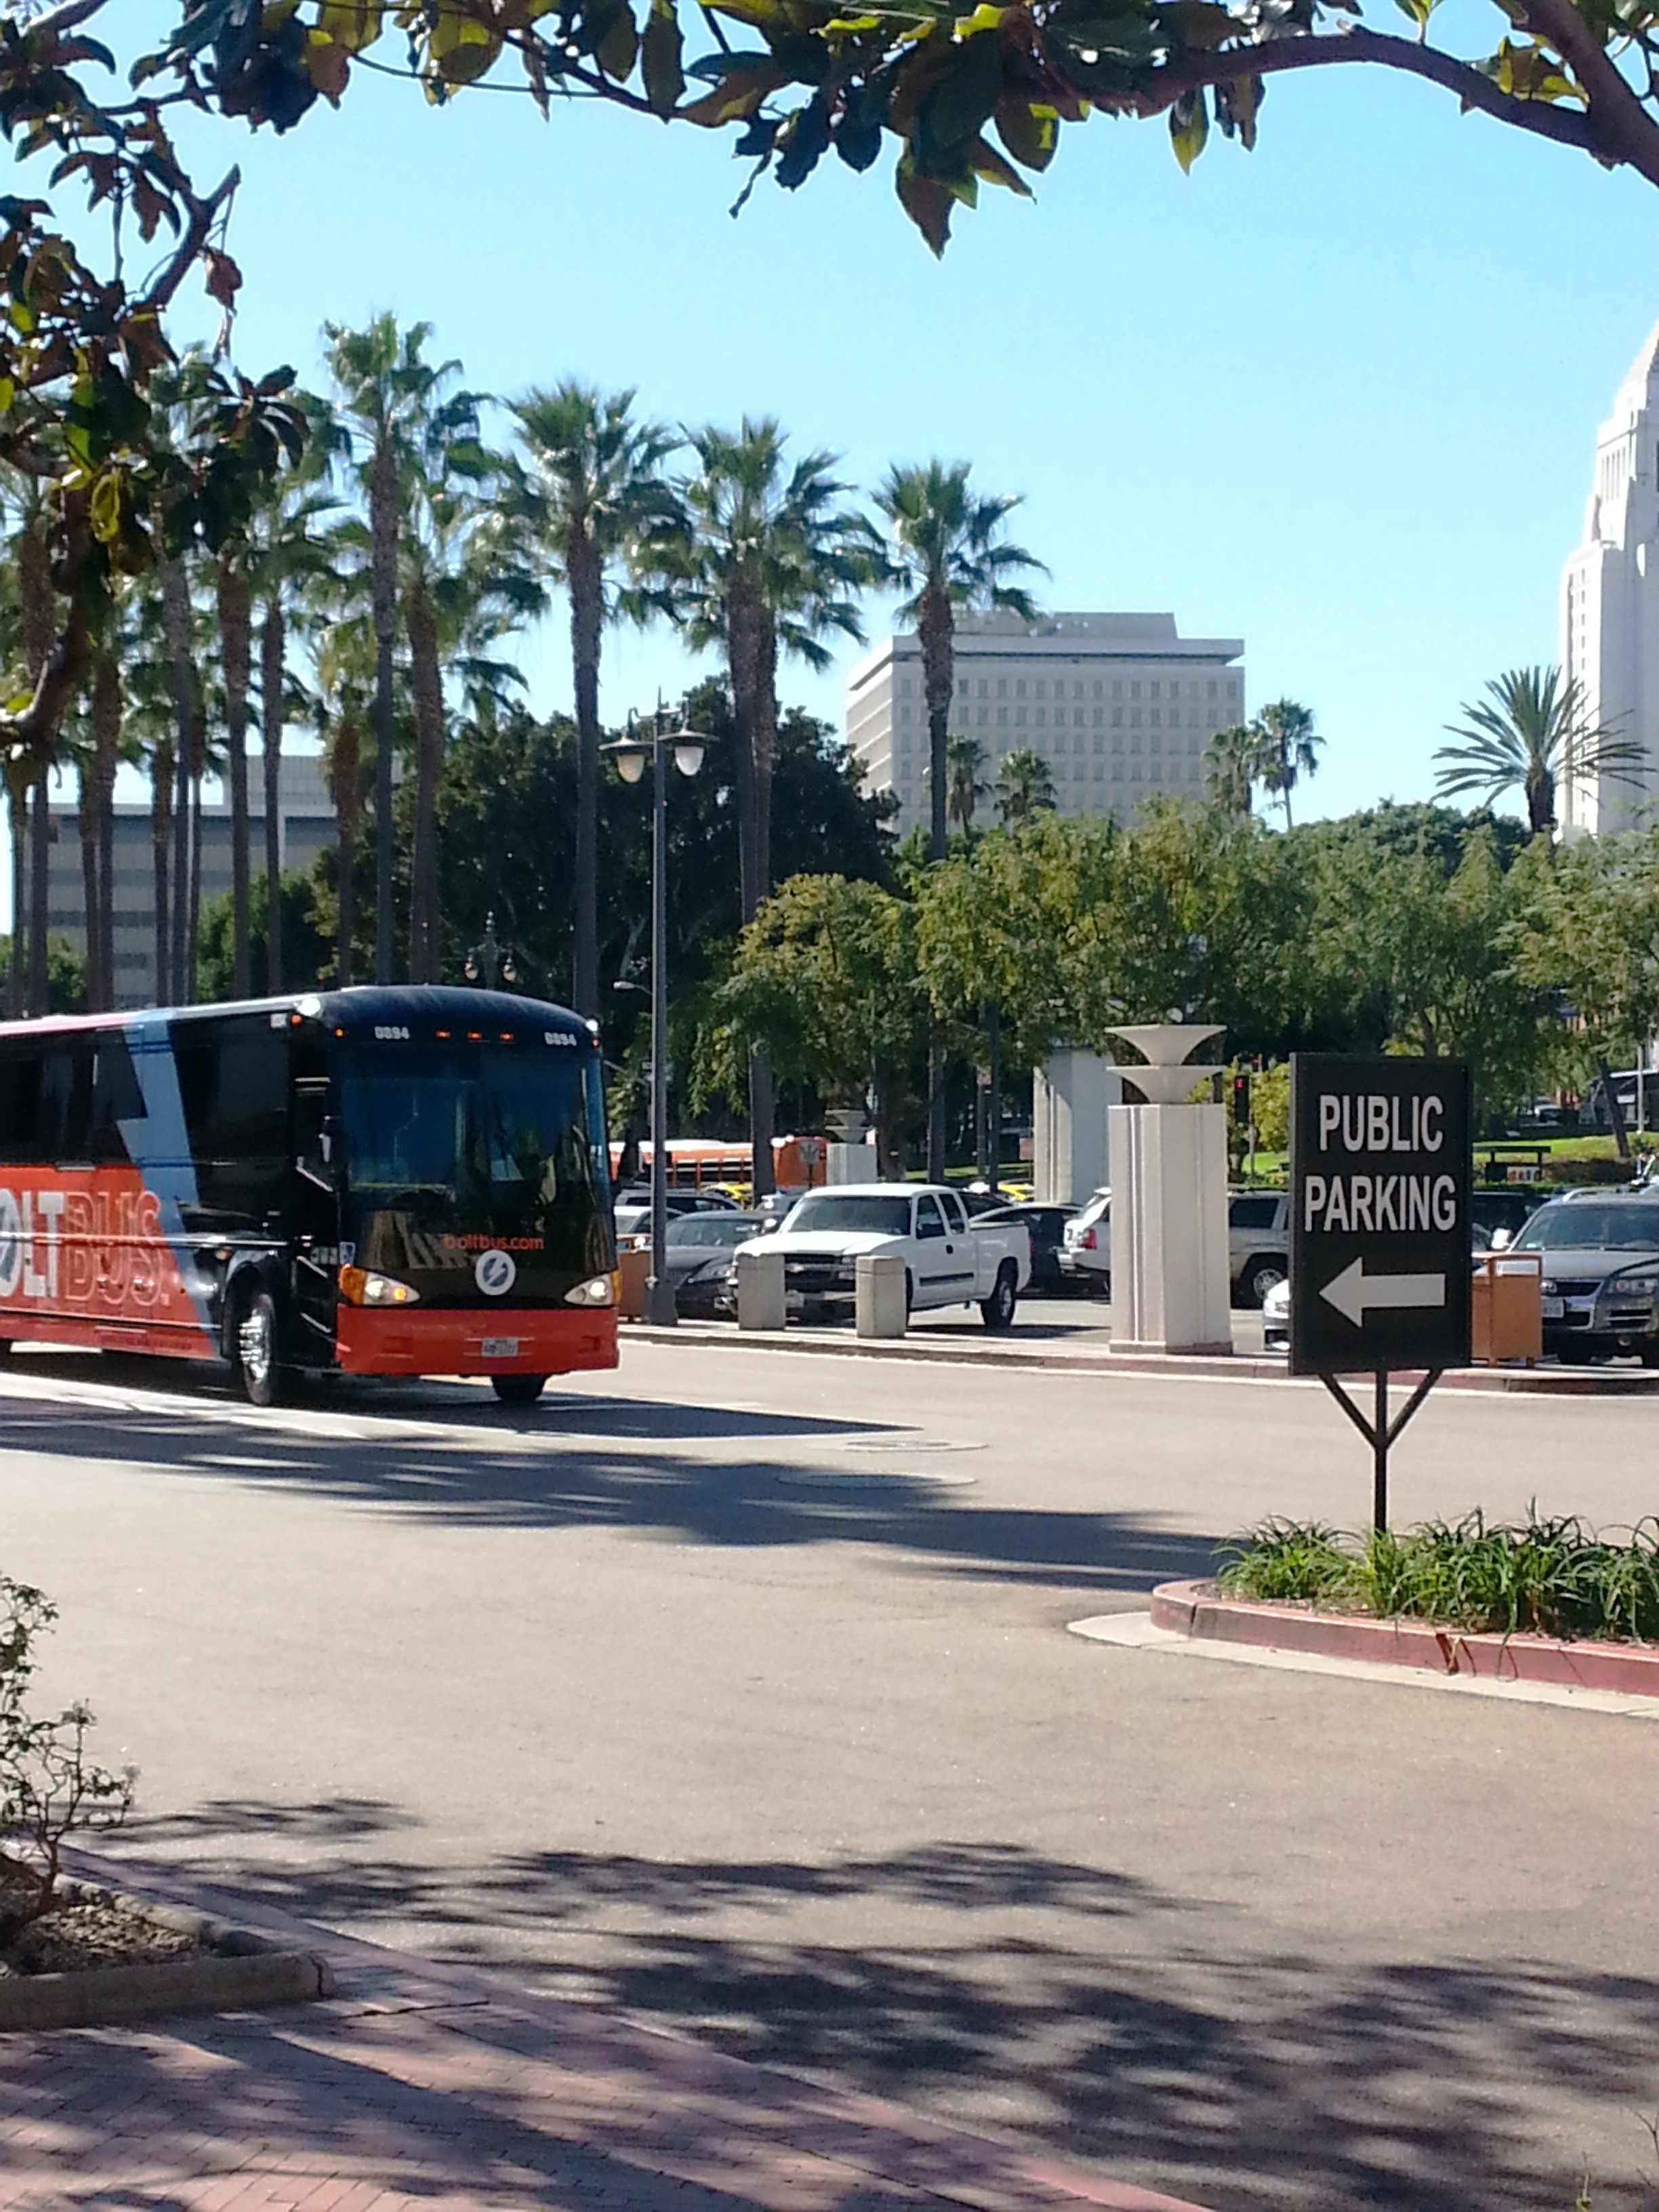 BoltBus now at Union Station and ready to start service to